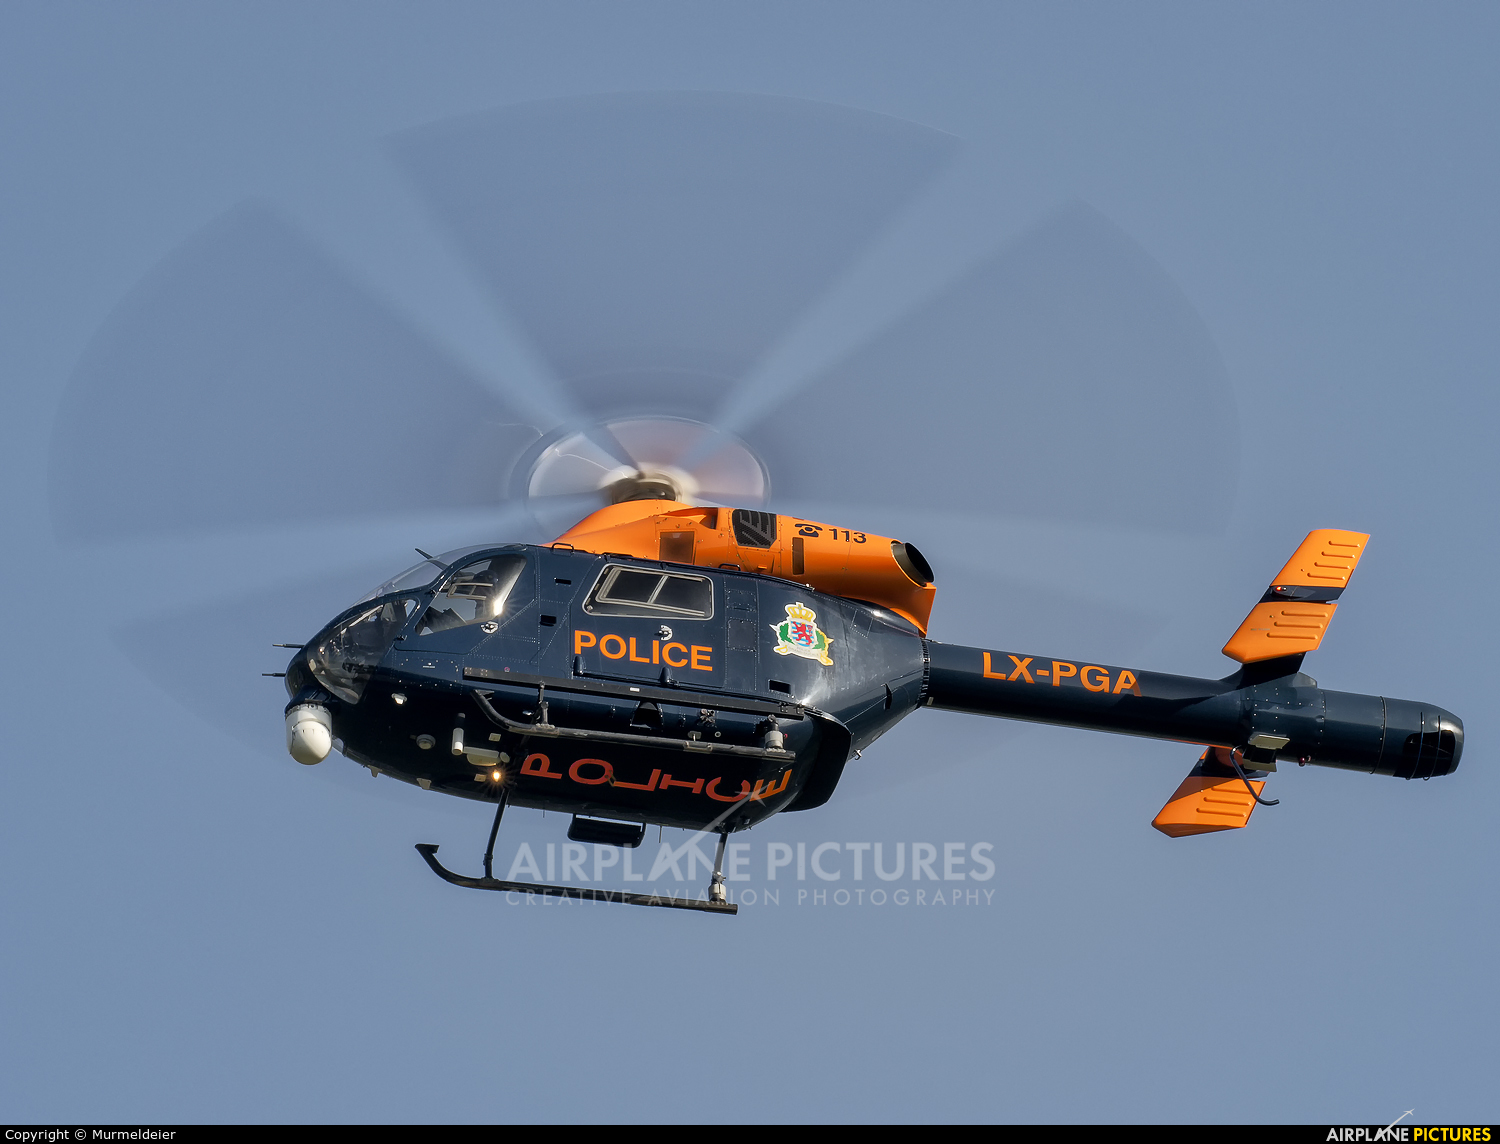 Luxembourg - Police LX-PGA aircraft at Luxembourg - Findel